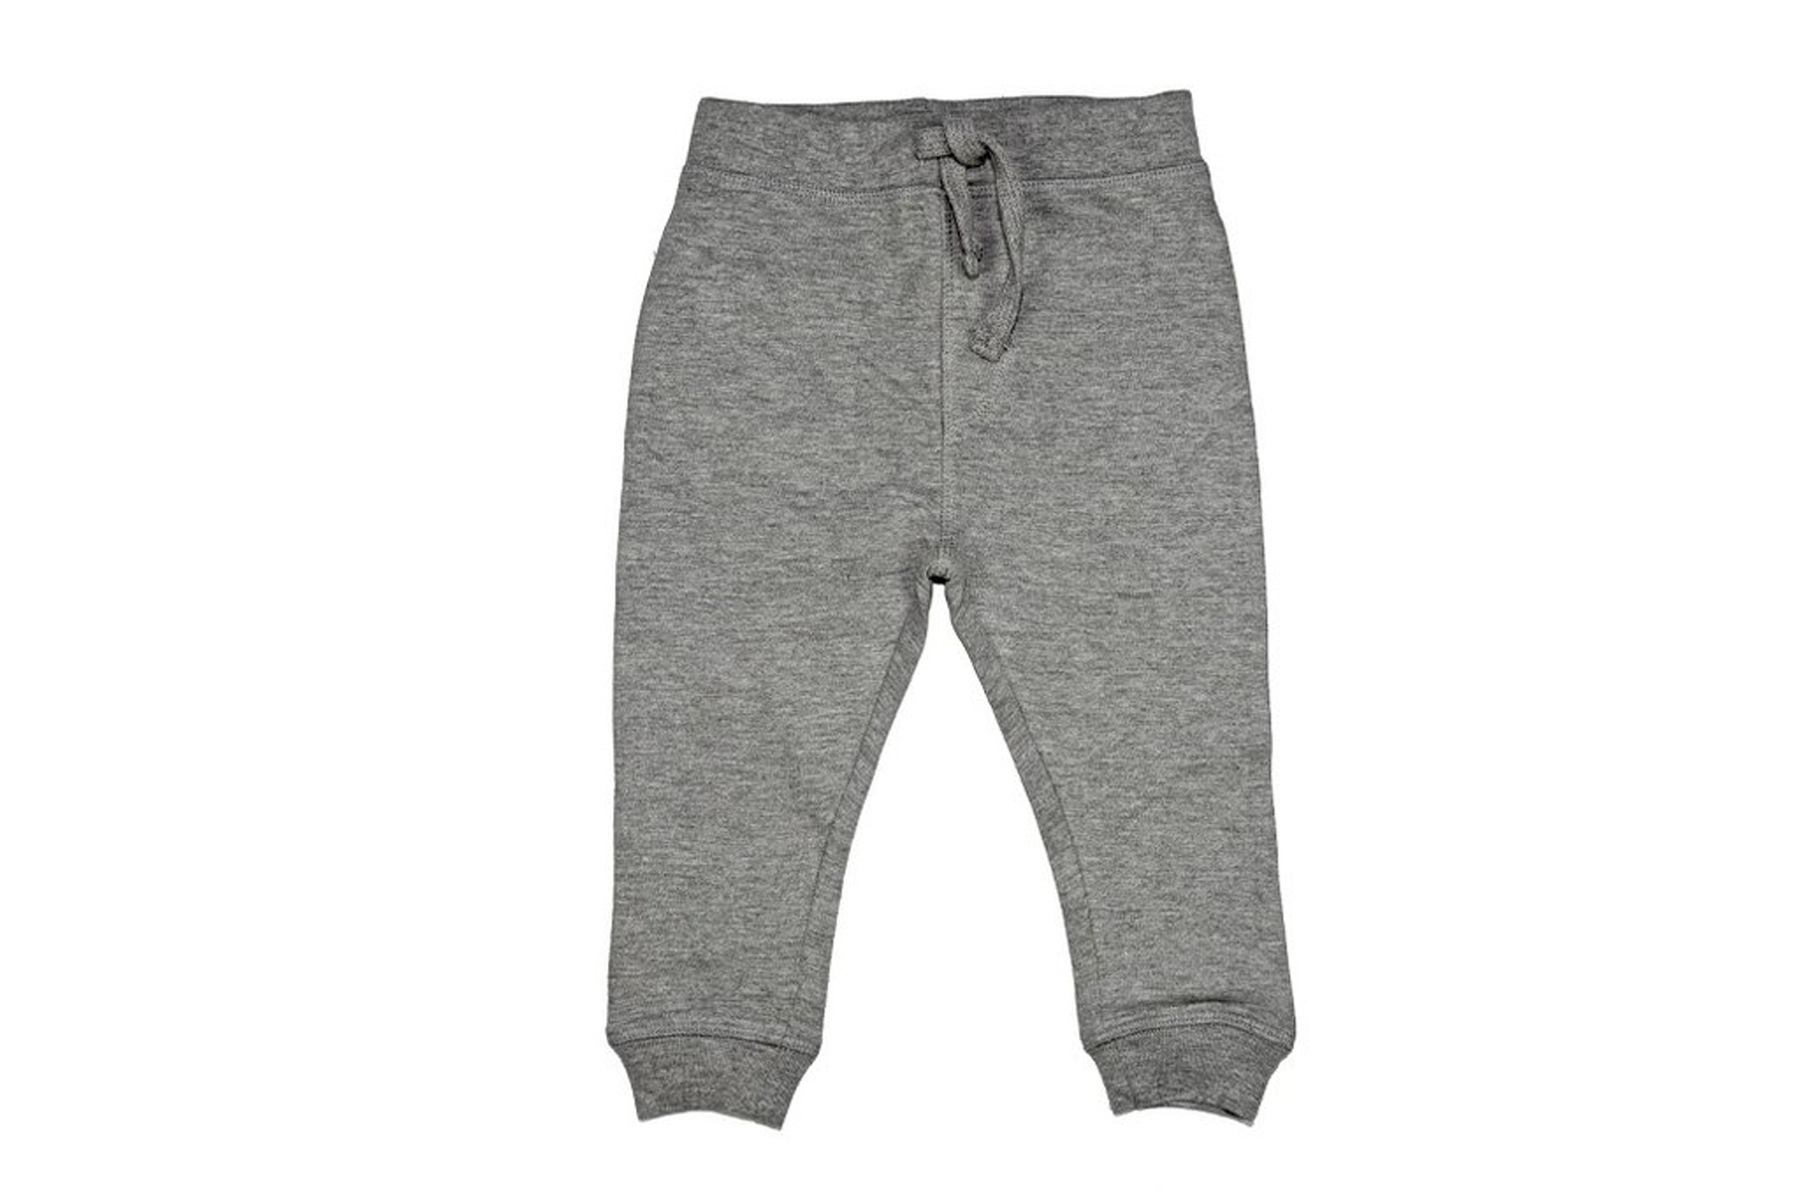 Solid Jogger Pants - Heather Gray (1484969803851)